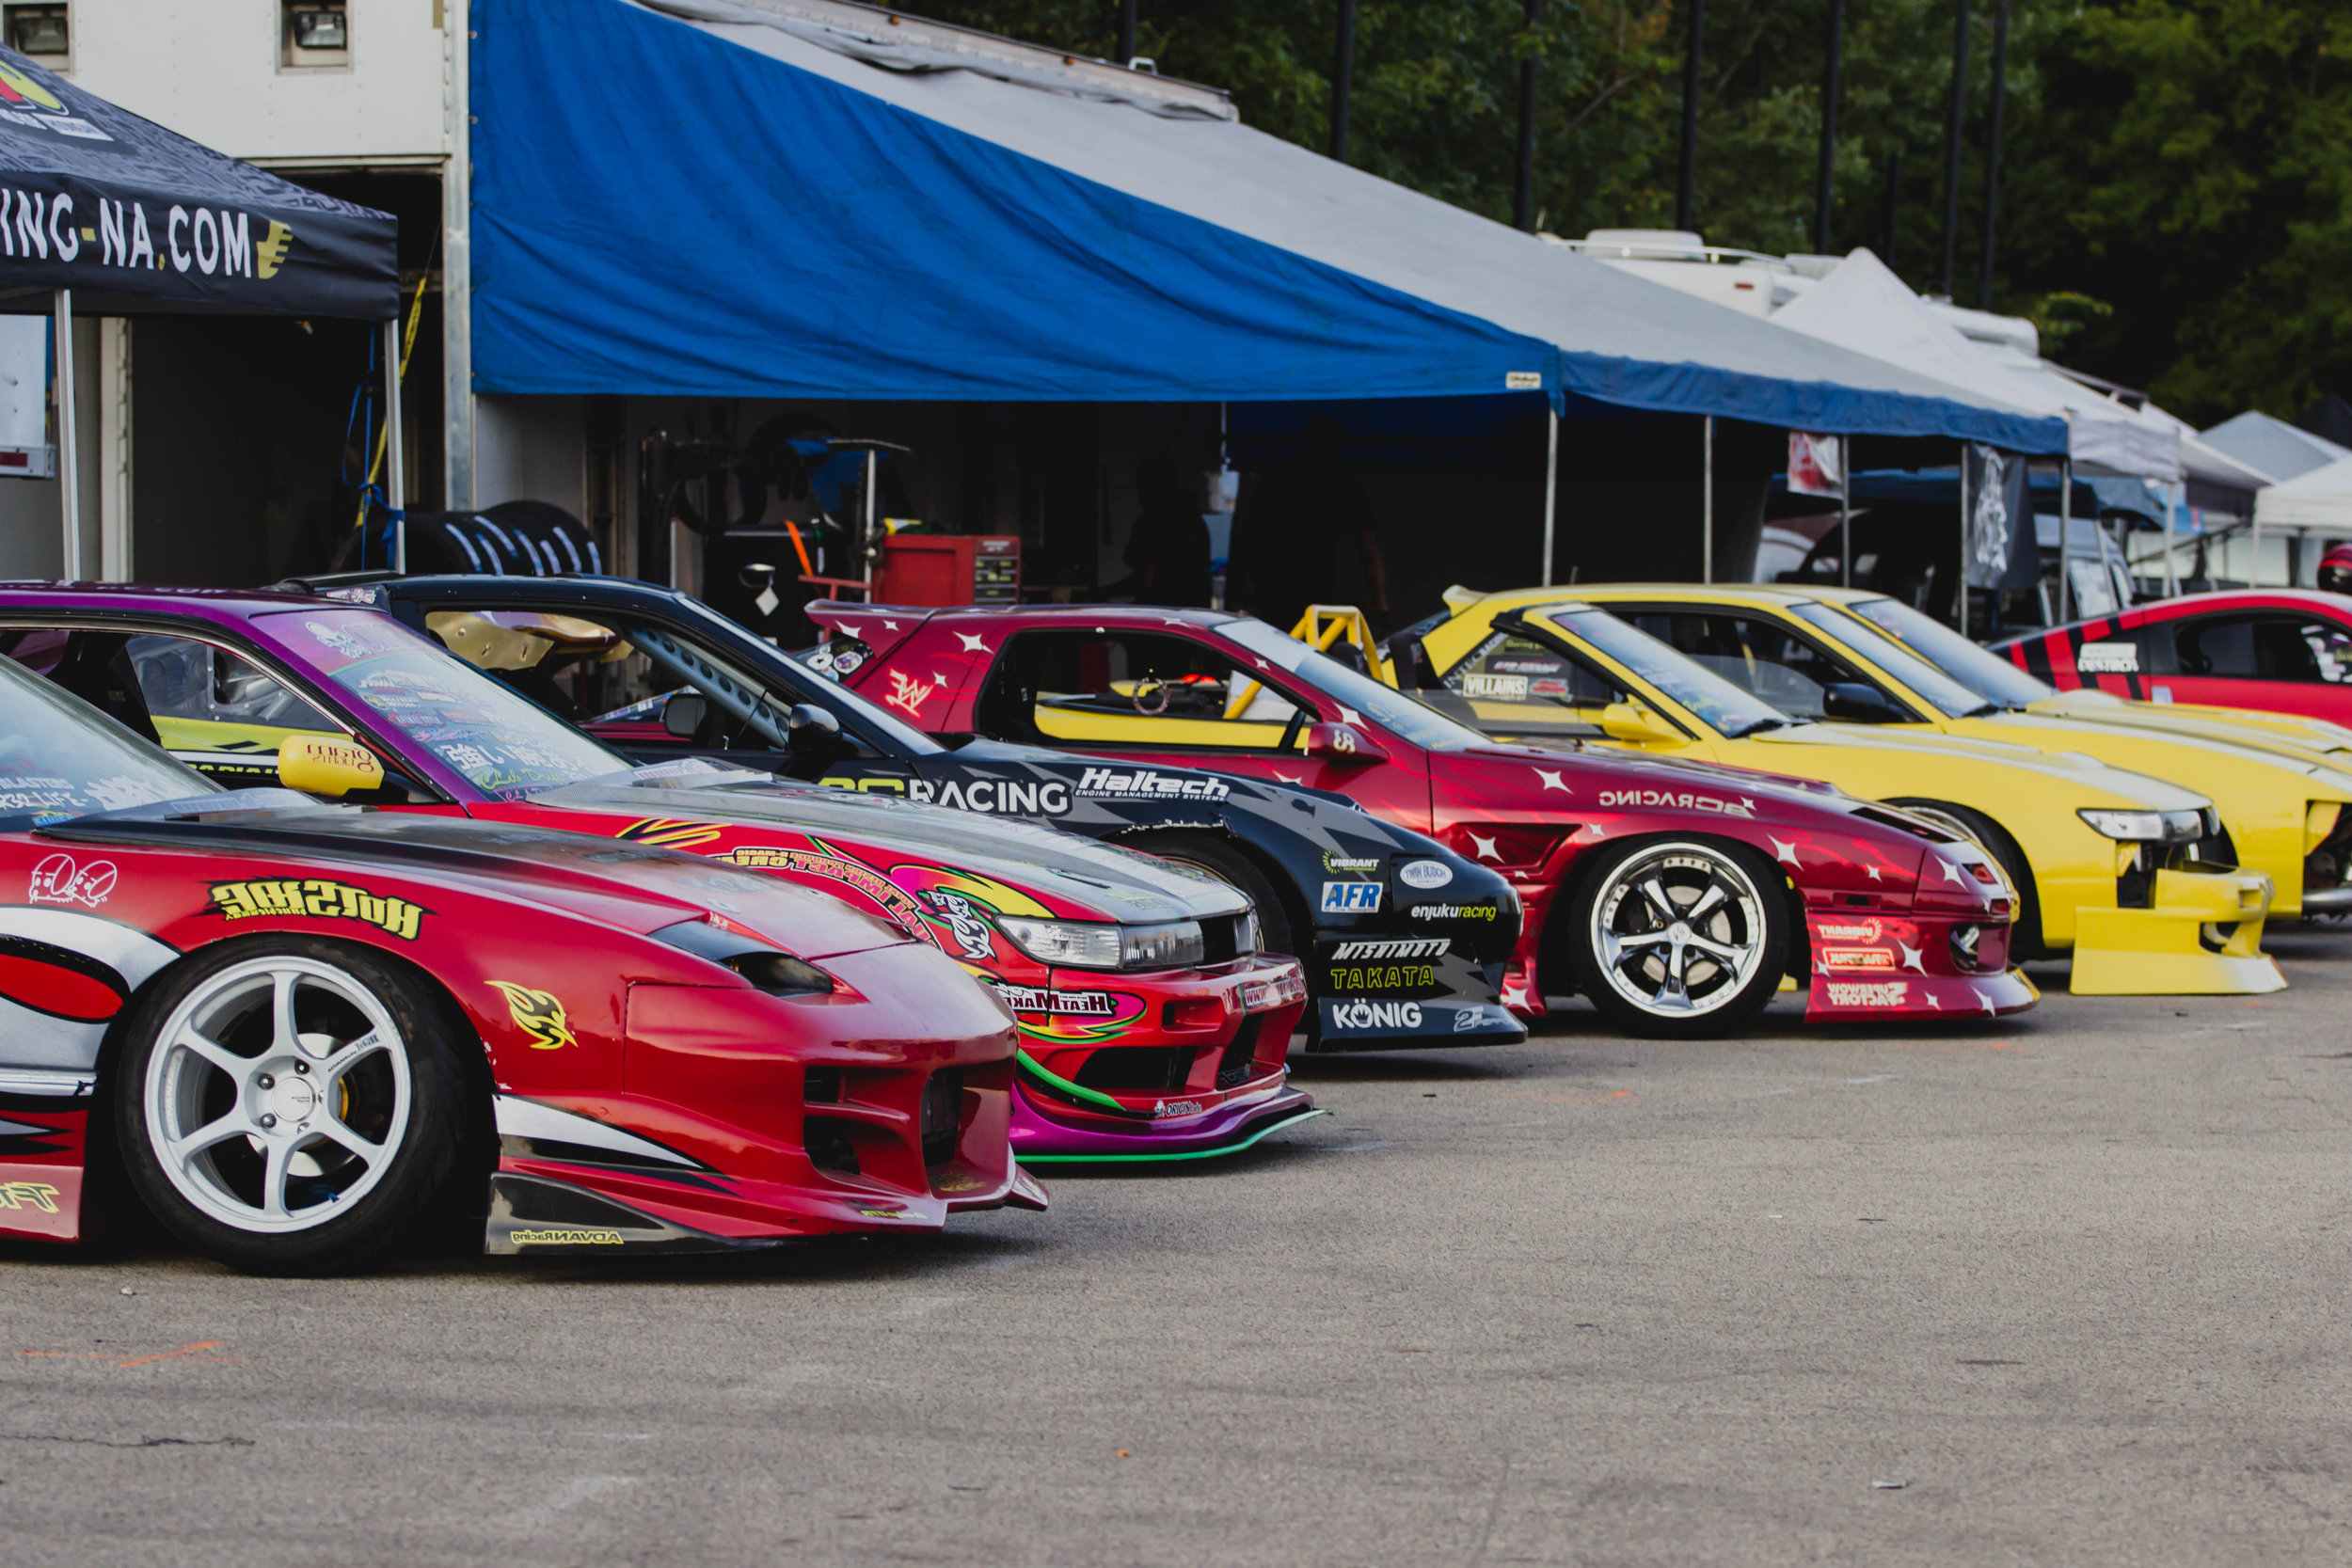 Club Fr UsAir Final Bout 3.jpg